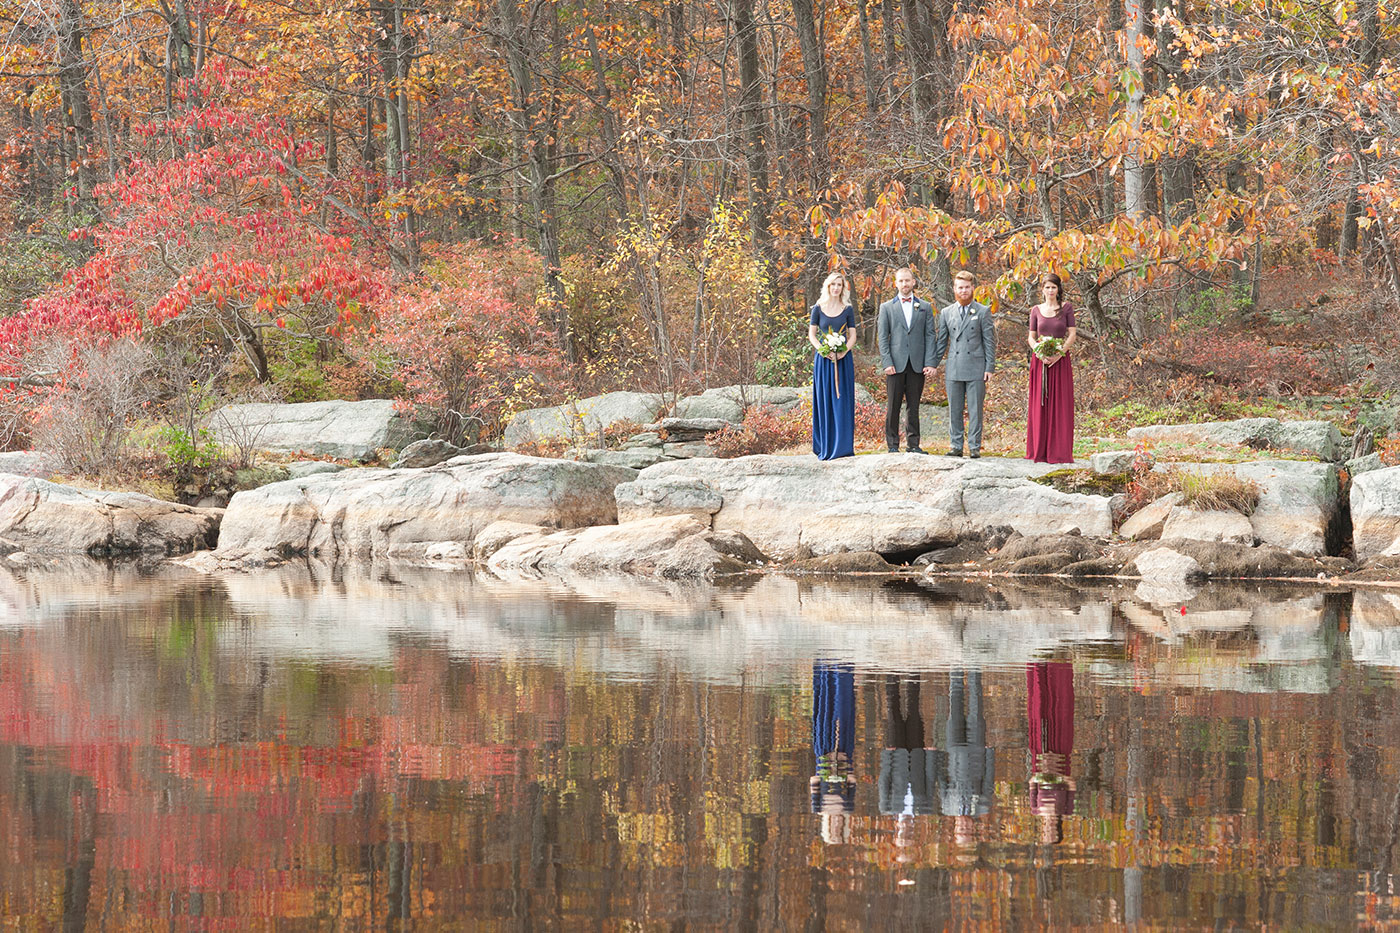 Gay wedding inspiration, photos by Mikkel Paige, Raleigh wedding photographer. Custom bridesmaids of navy and deep red by Synderella Story in New York. Lakeside, autumn inspiration.